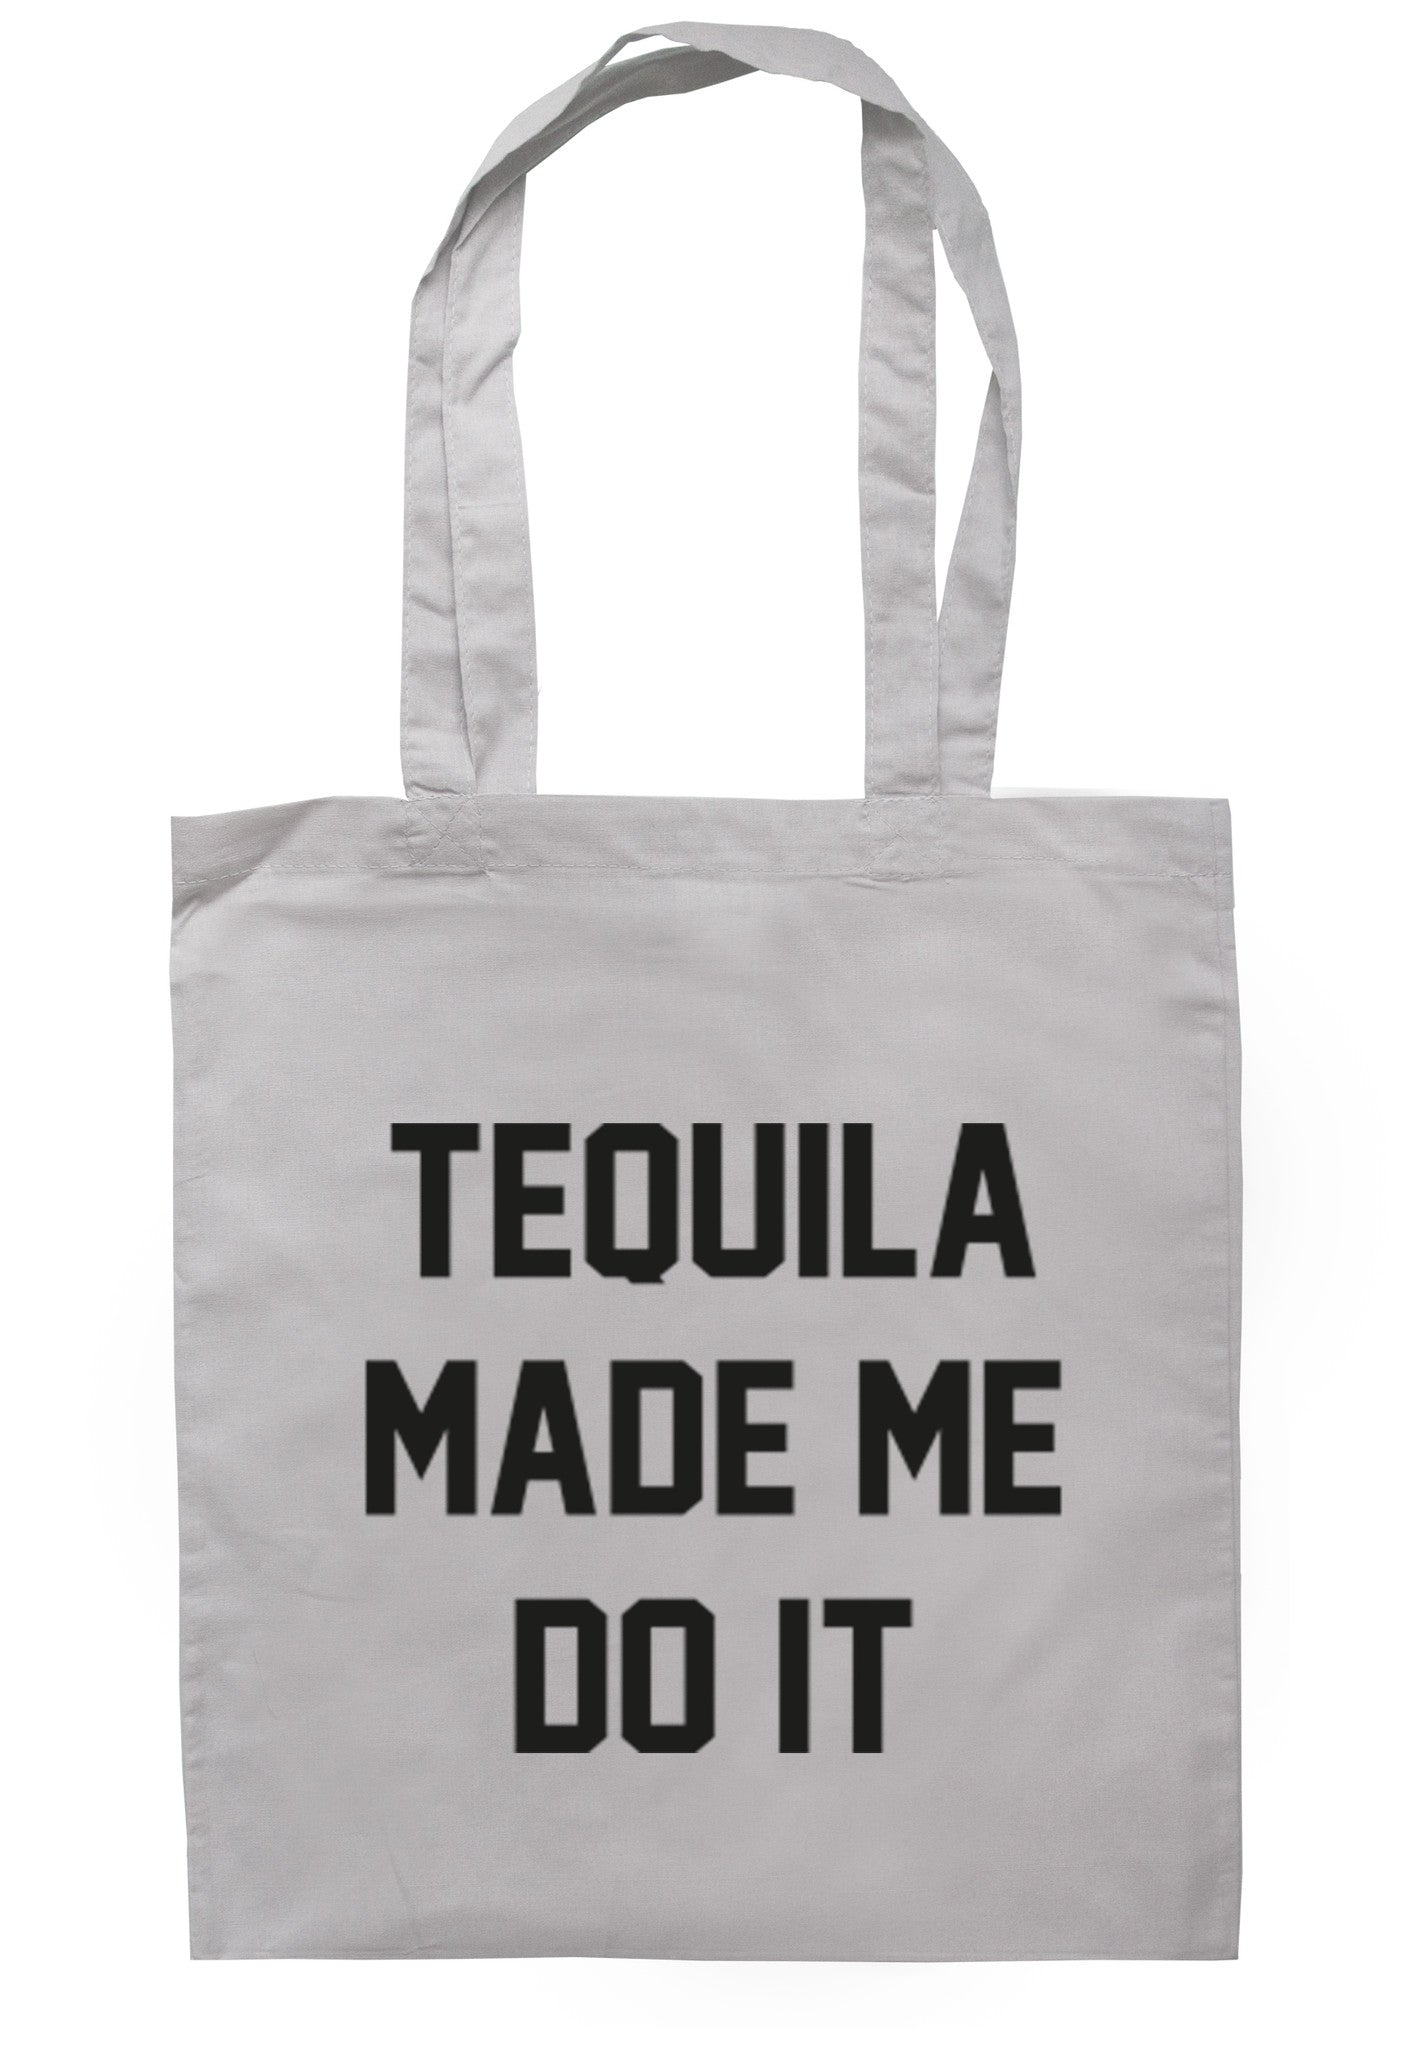 Tequila Made Me Do It Tote Bag TB0015 - Illustrated Identity Ltd.